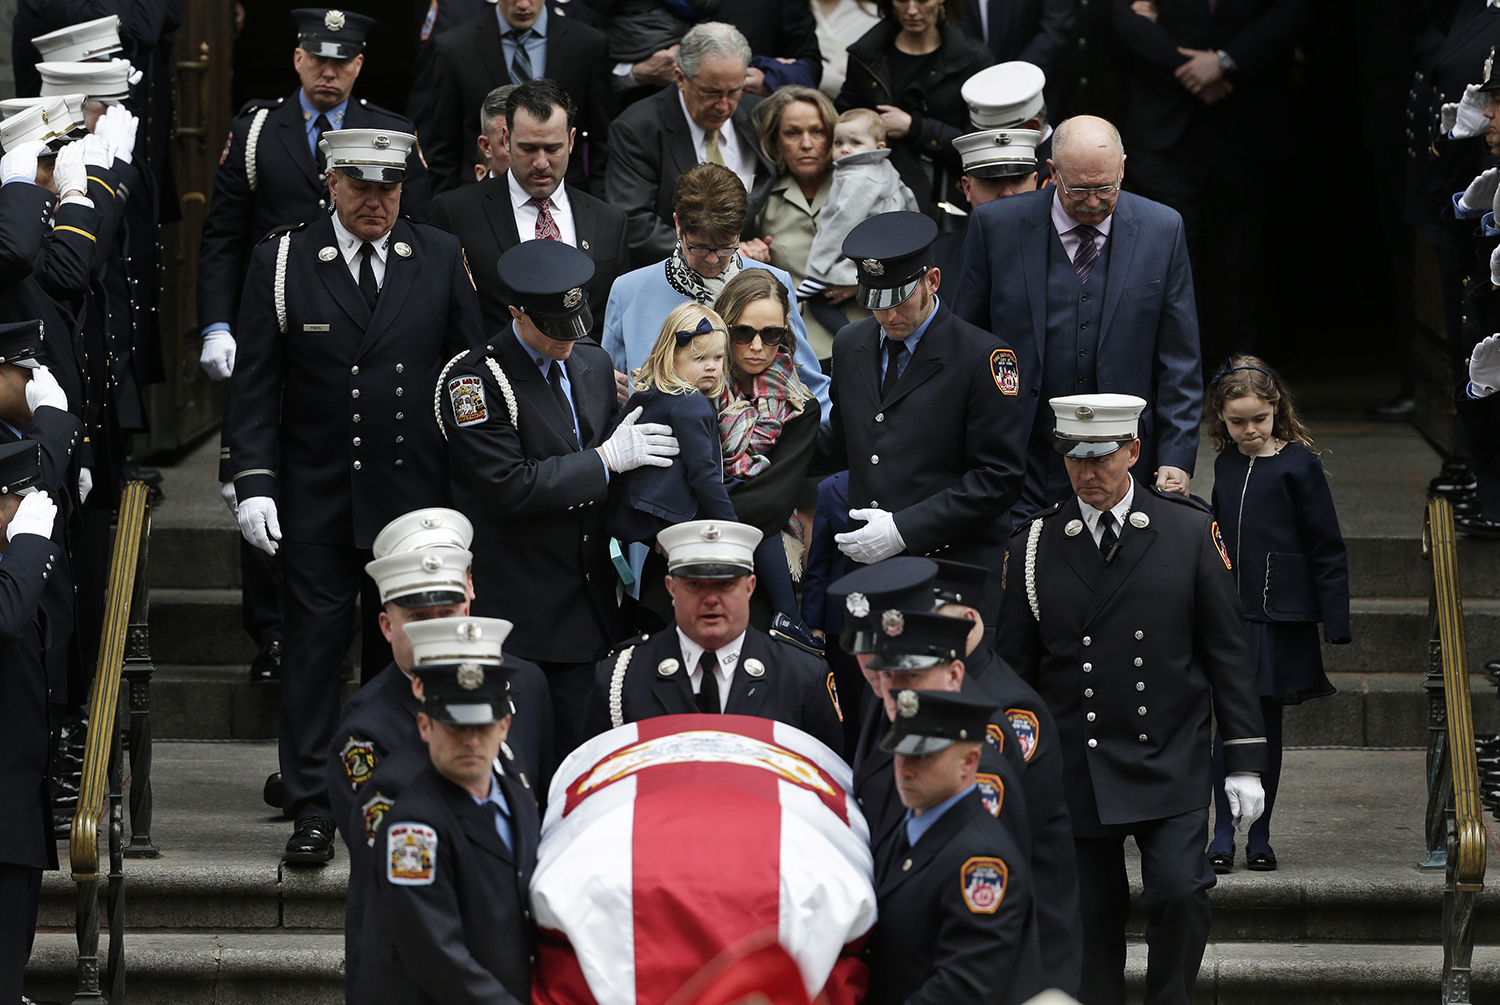 <div class='meta'><div class='origin-logo' data-origin='AP'></div><span class='caption-text' data-credit='Seth Wenig'>The family of firefighter Michael Davidson, including his wife Eileen Davidson, center, follow the casket out of St. Patrick's Cathedral after his funeral.</span></div>